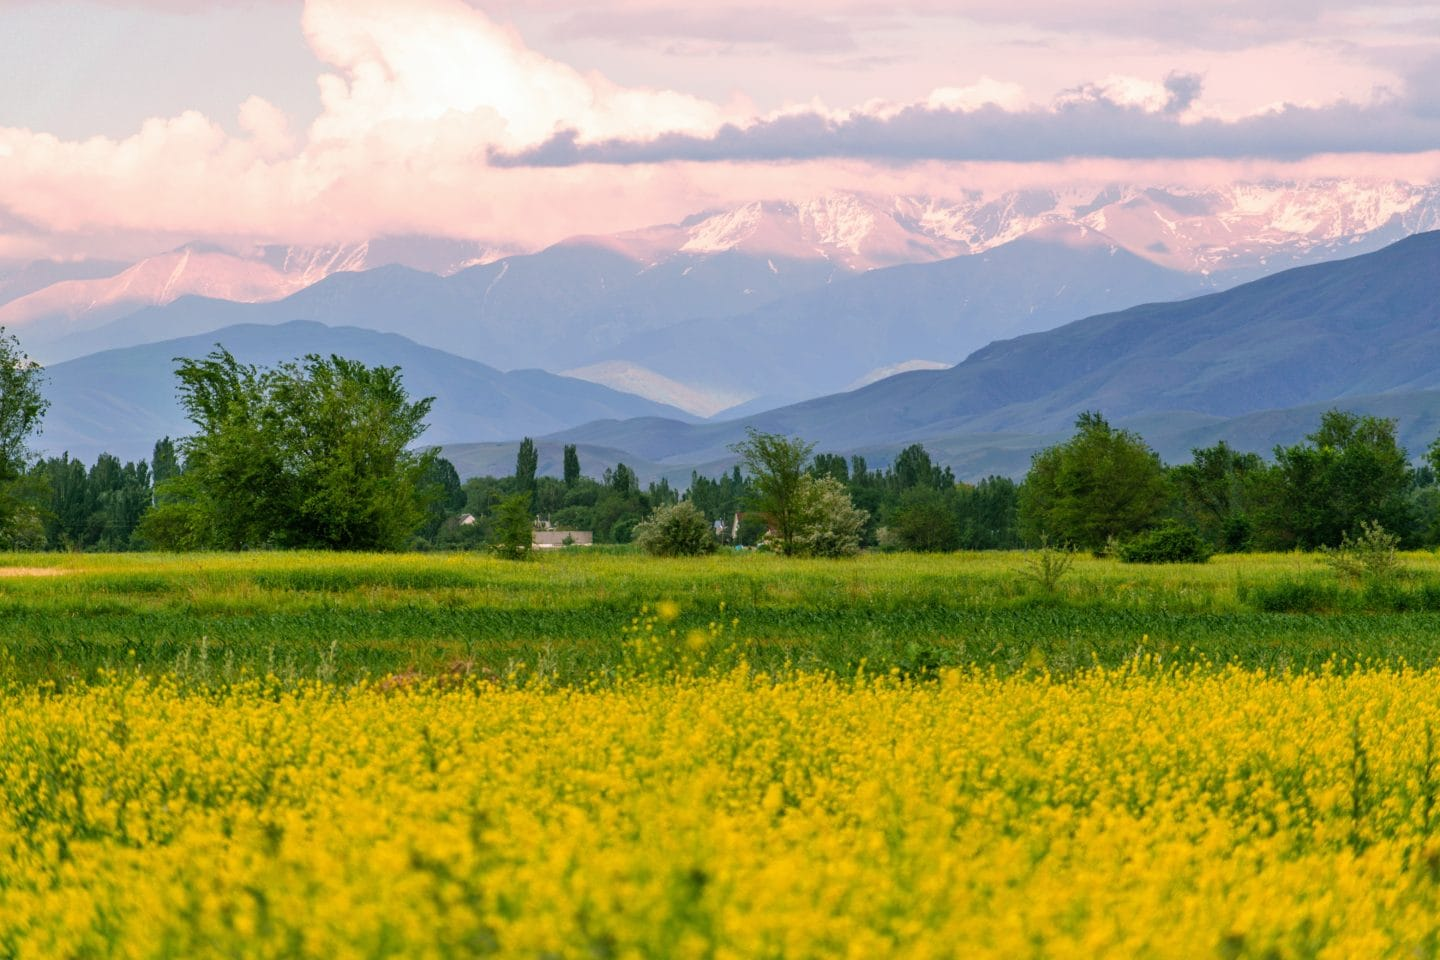 Kyrgyzstan field and mountains